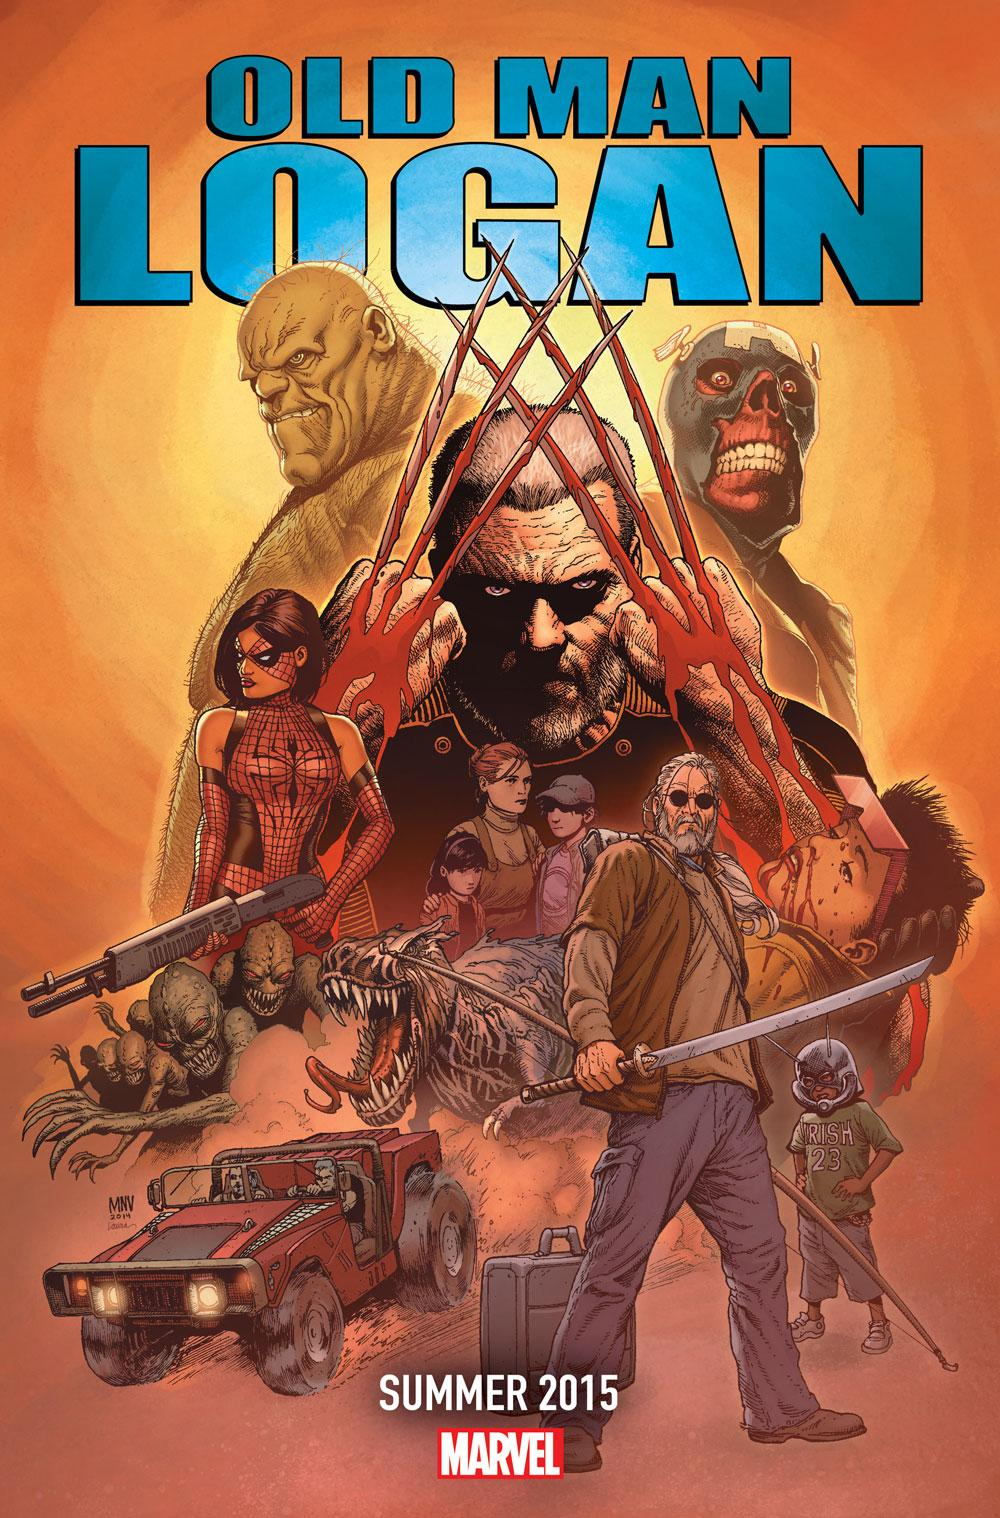 oldmanlogan OLD MAN LOGAN, he just keeps rollin' along